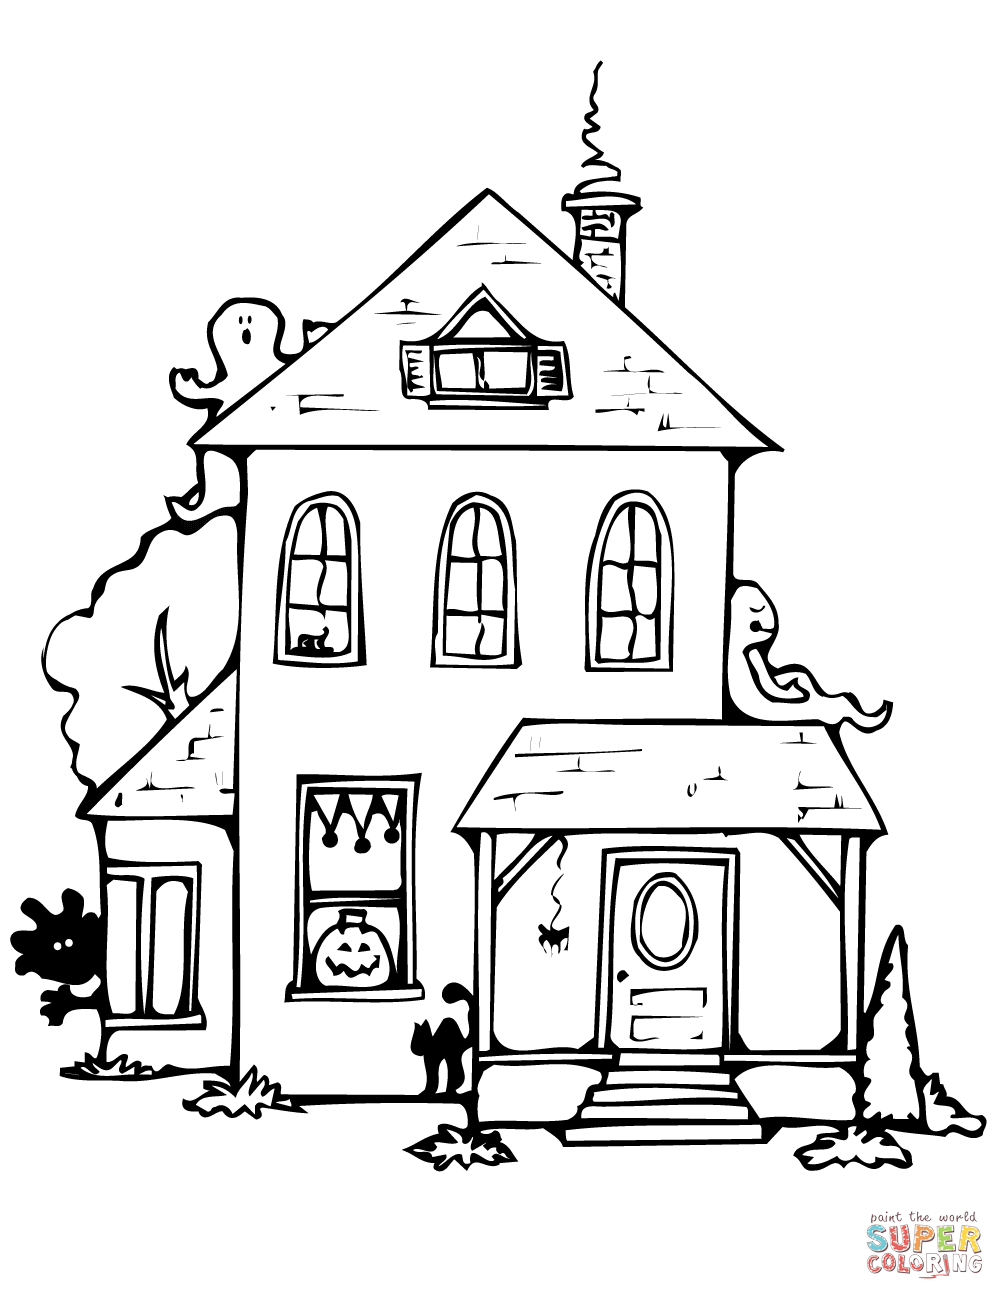 haunted house coloring pages printables haunted house coloring pages coloring pages to download haunted coloring pages house printables